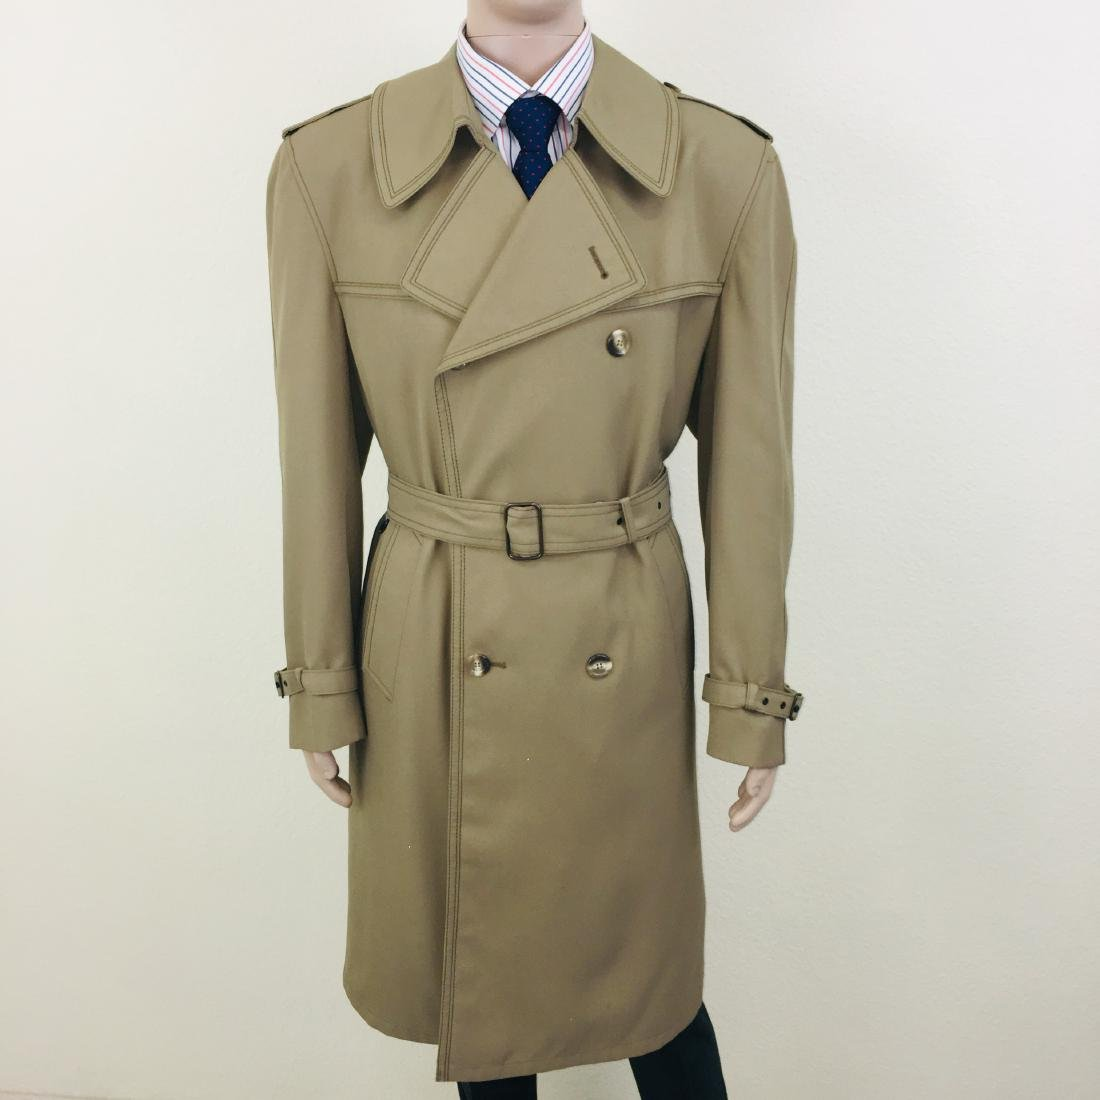 Vintage Men's Dress Boraj High Quality Trench Coat - 3